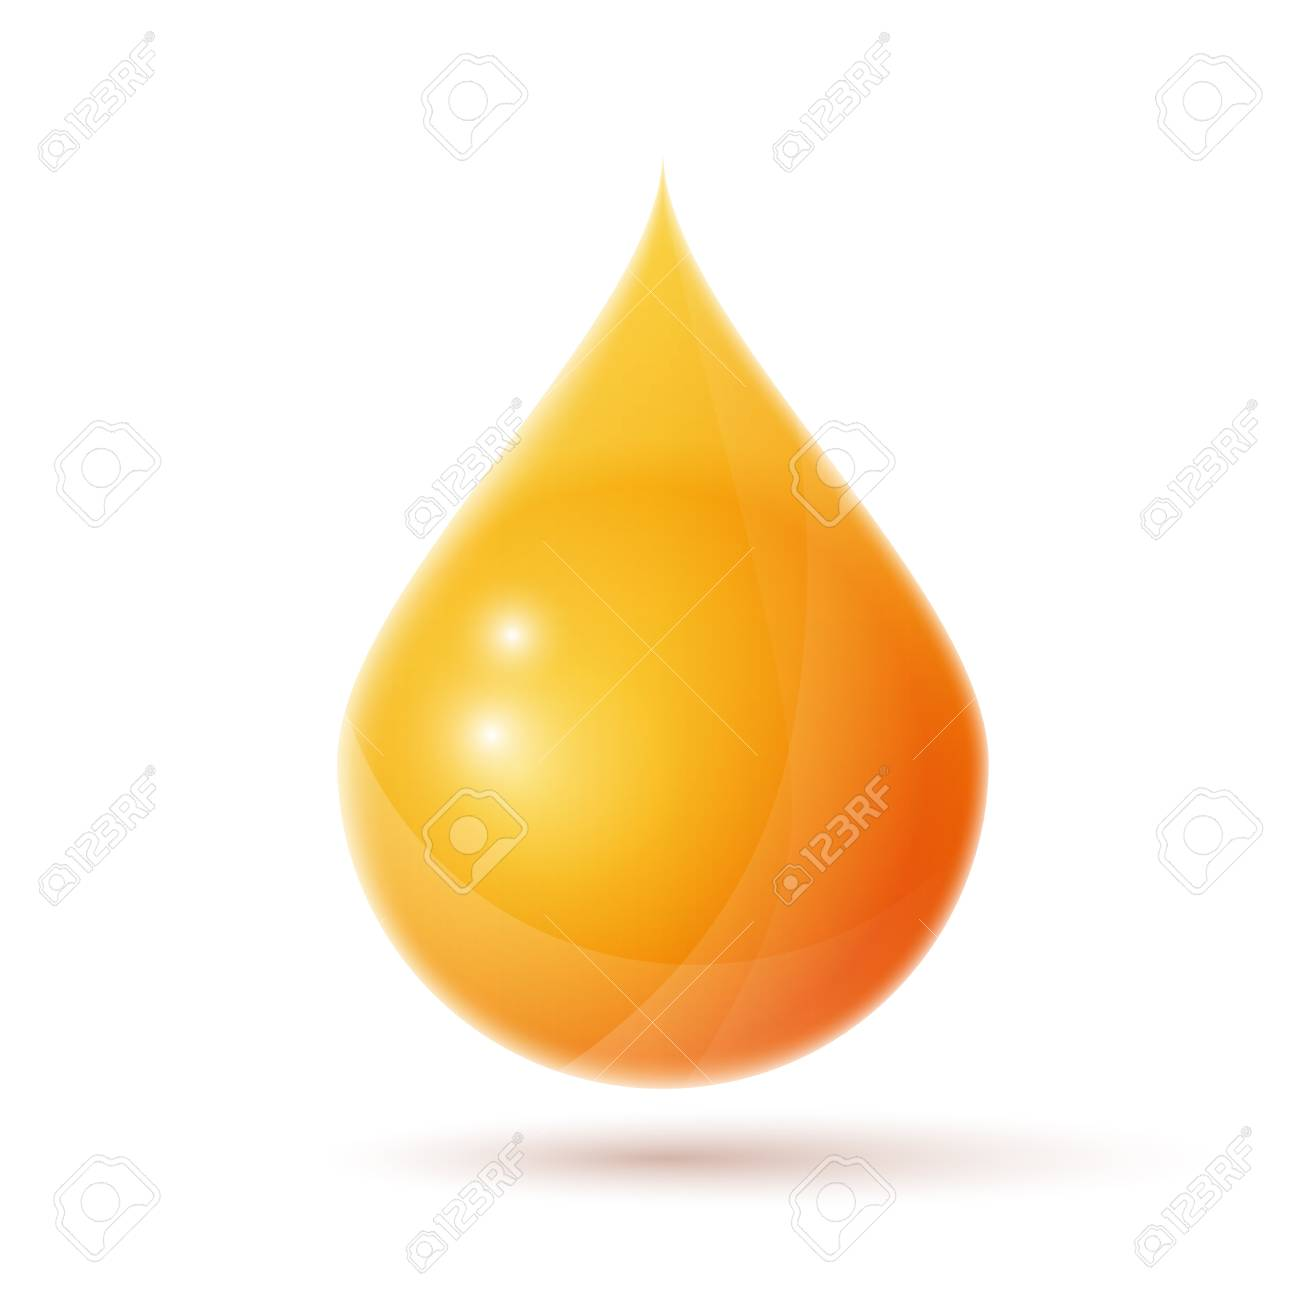 oil drop logo isolated